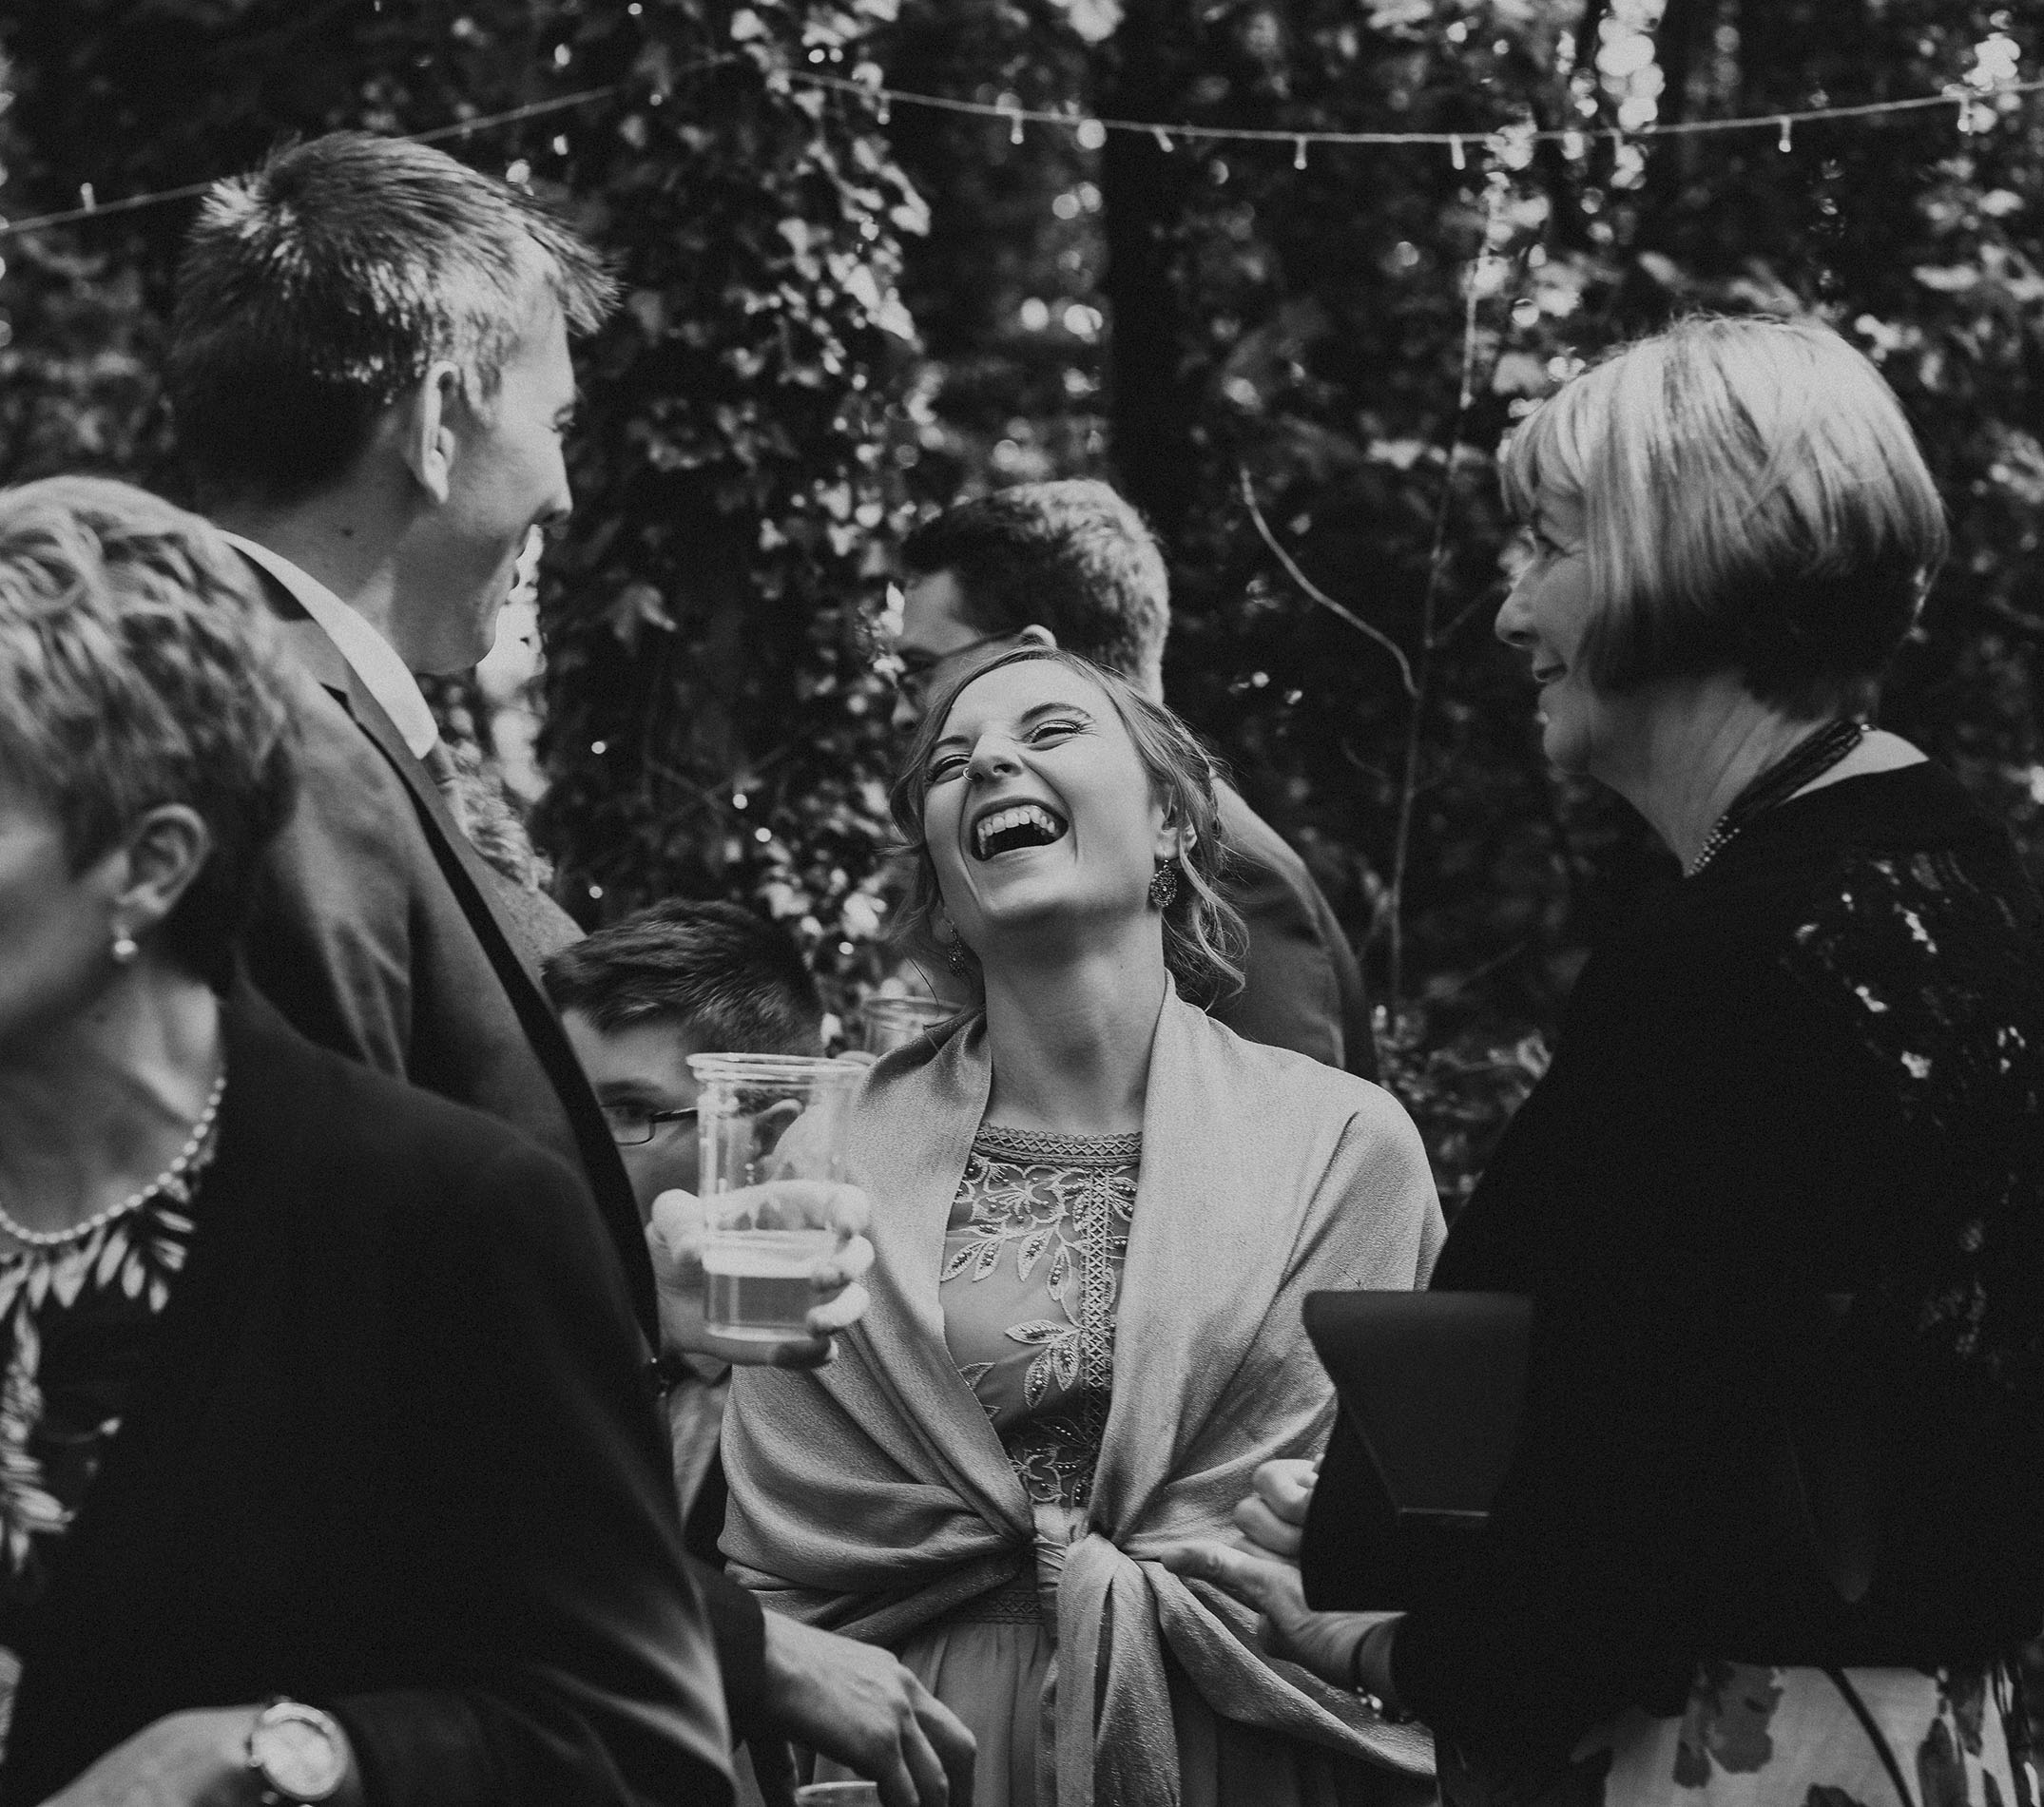 PJ_PHILLIPS_PHOTOGRAPHY_2018_SCOTLAND_WEDDING_PHOTOOGRAPHER_14.jpg